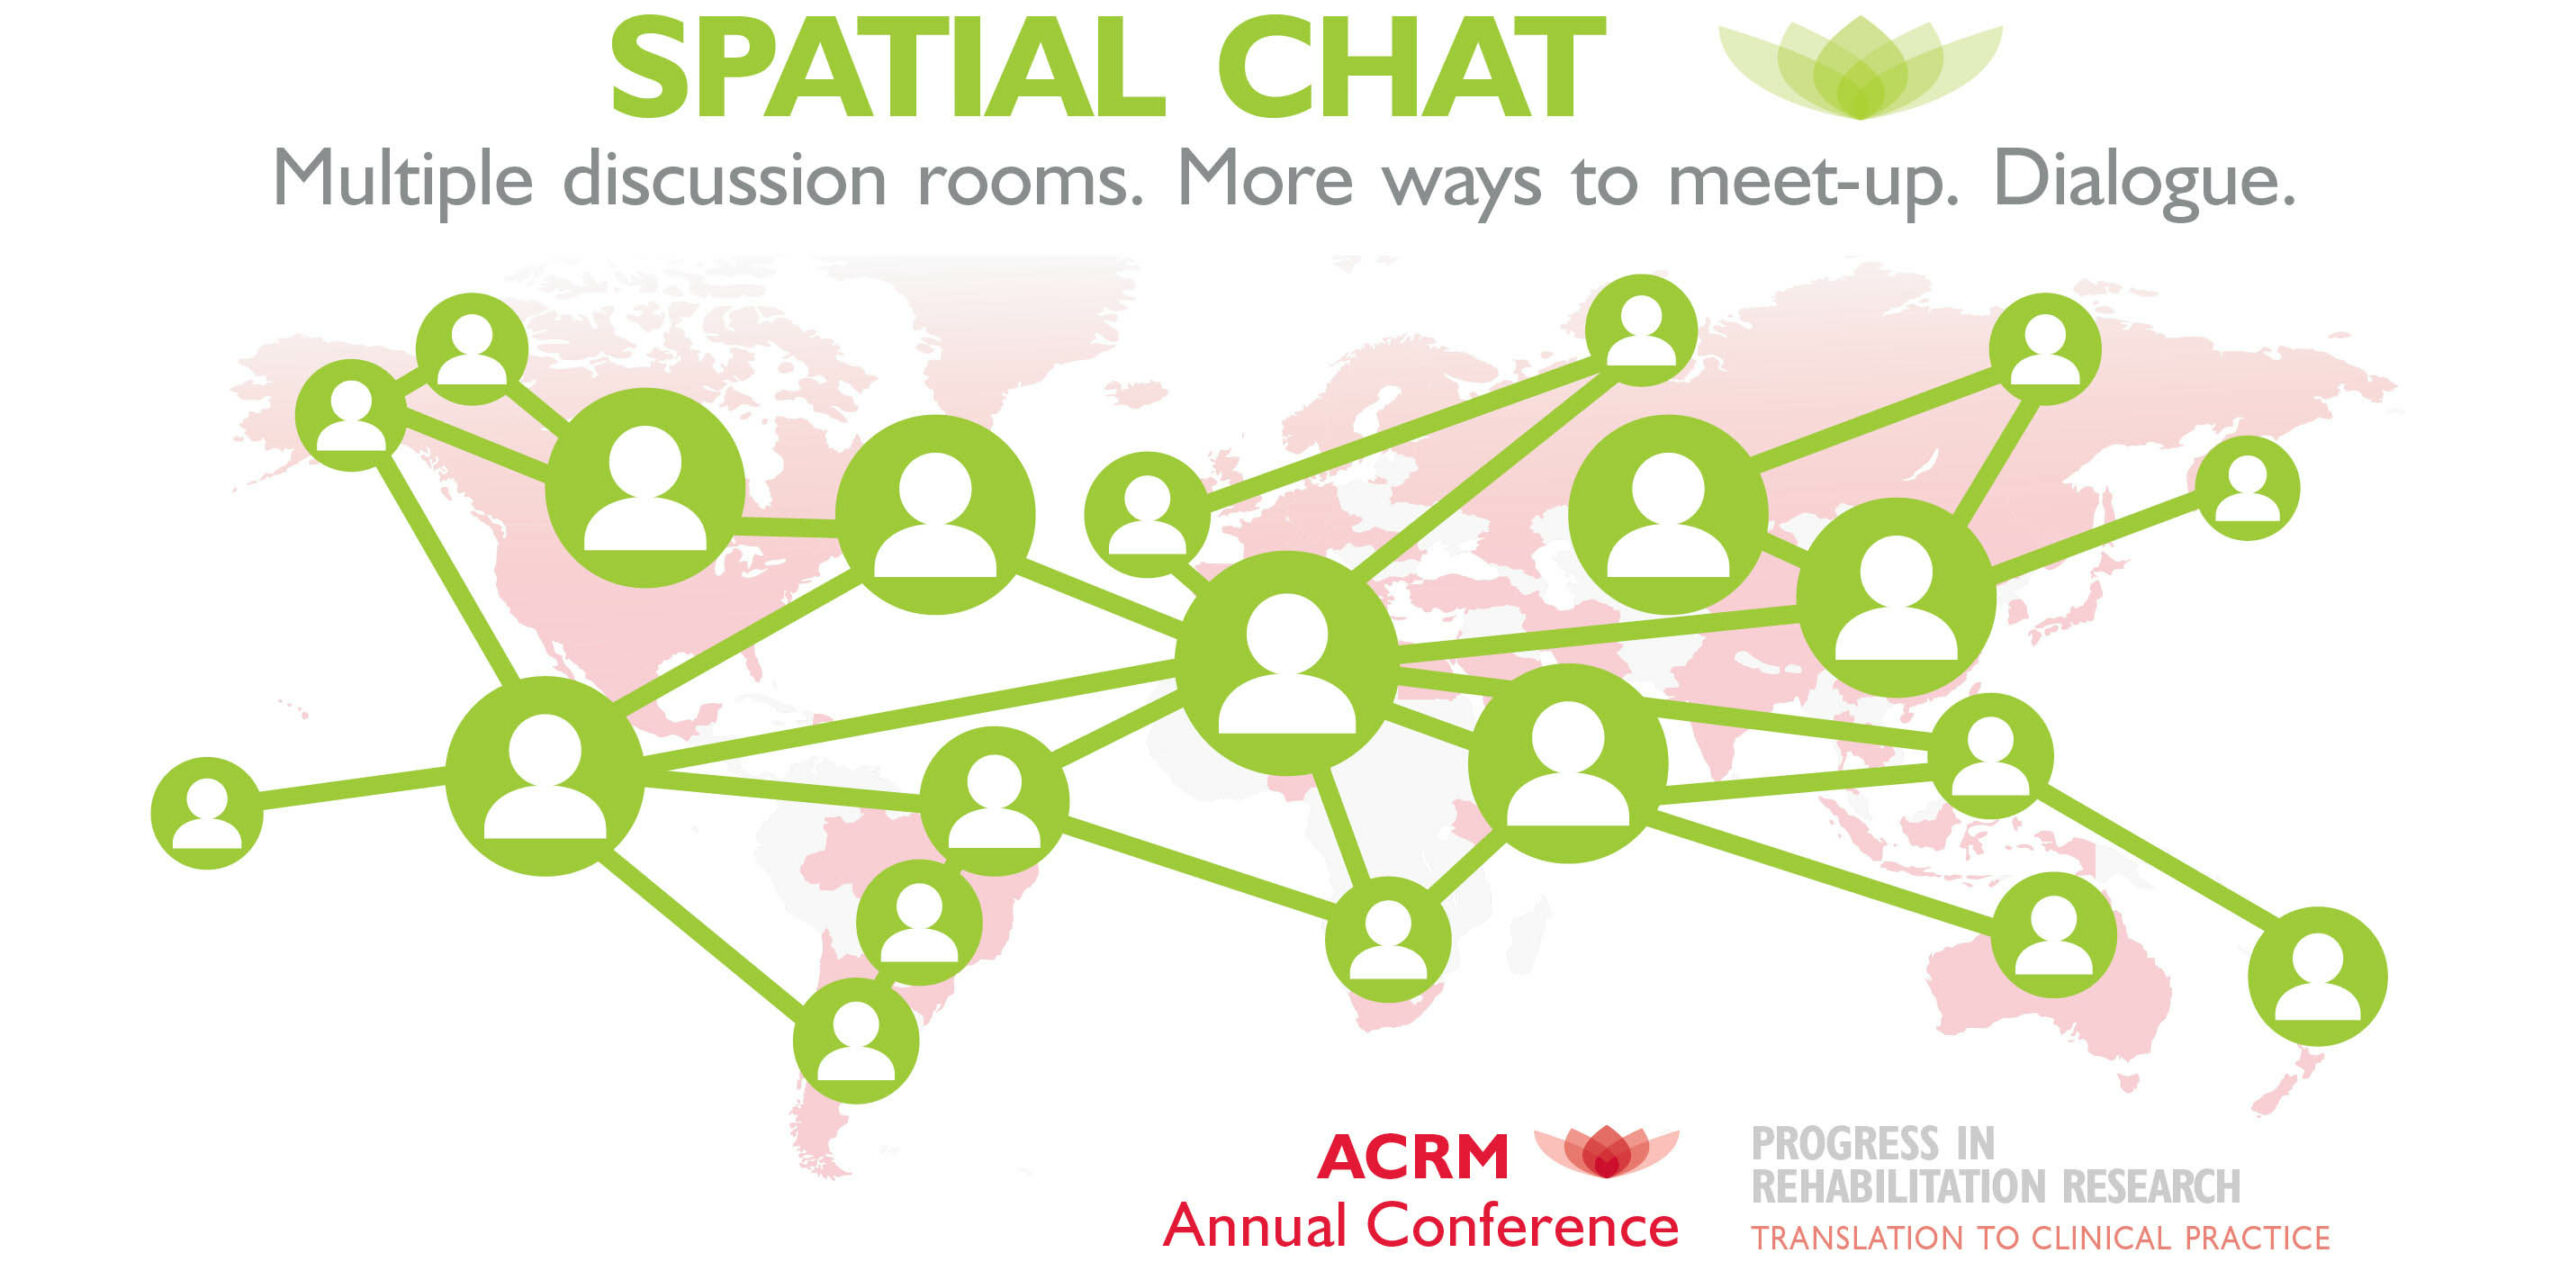 ACRM spatial chat at the Annual Conference